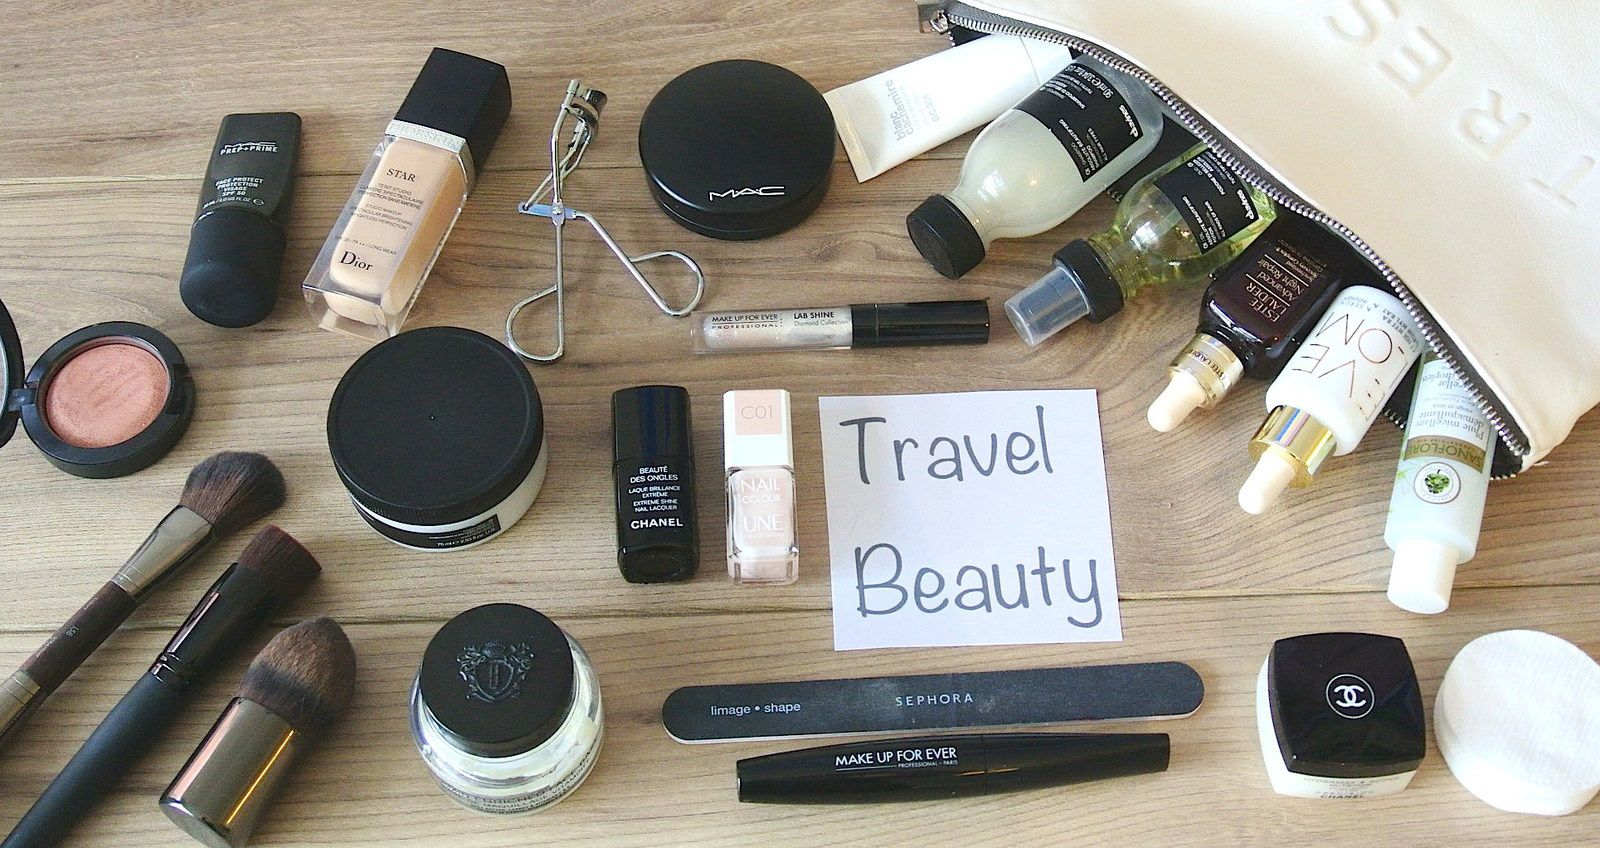 My Travel Beauty for NYC